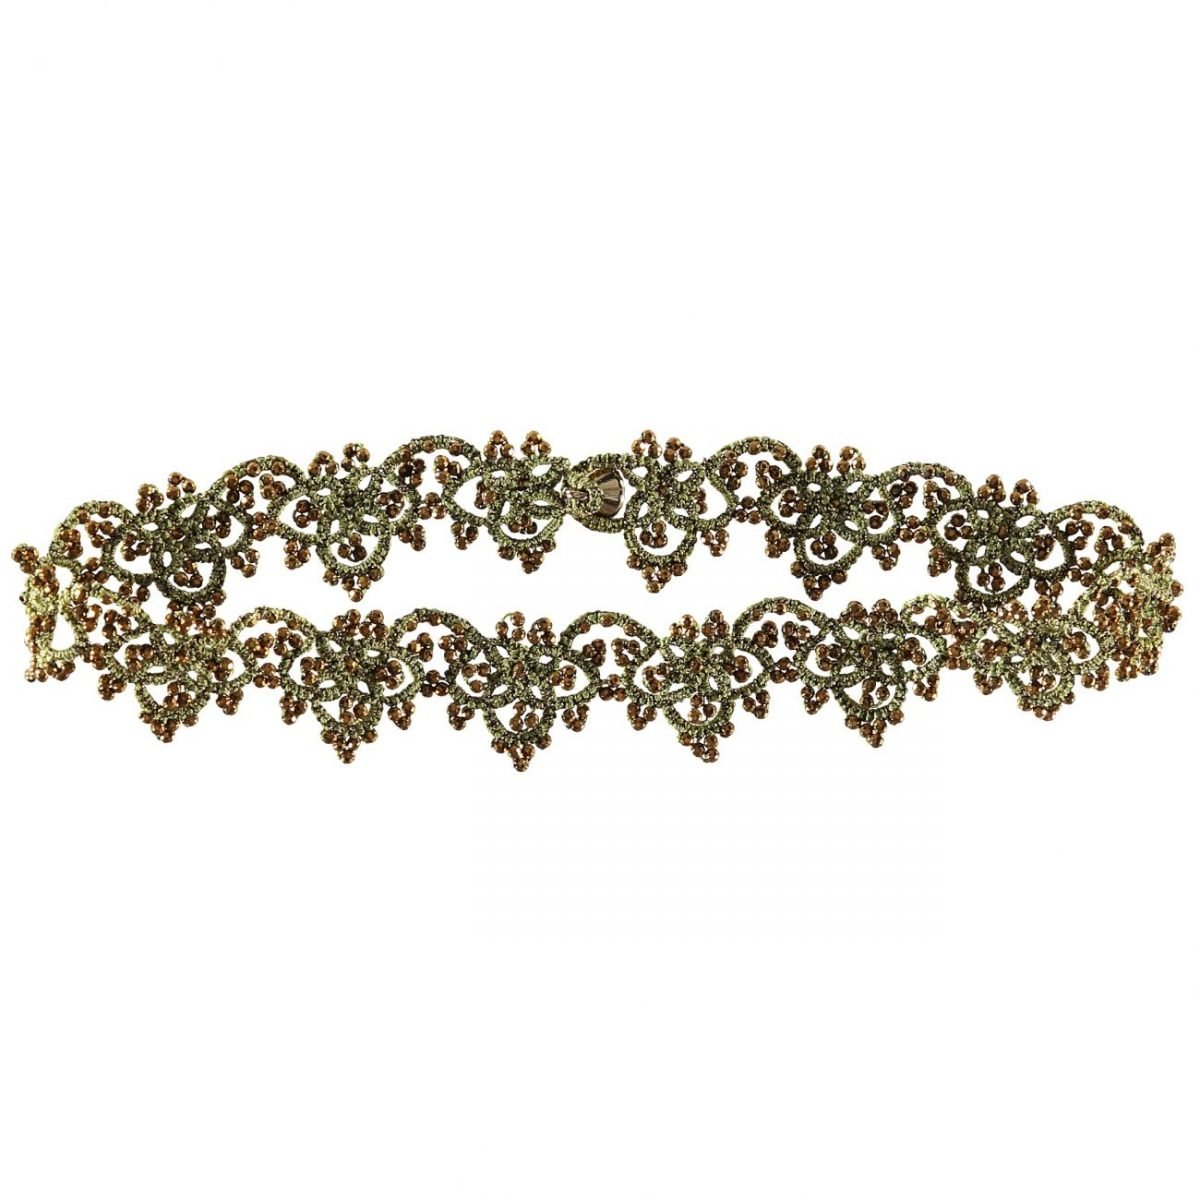 Suzy olive gold choker_Front _TO SEND2048x2048